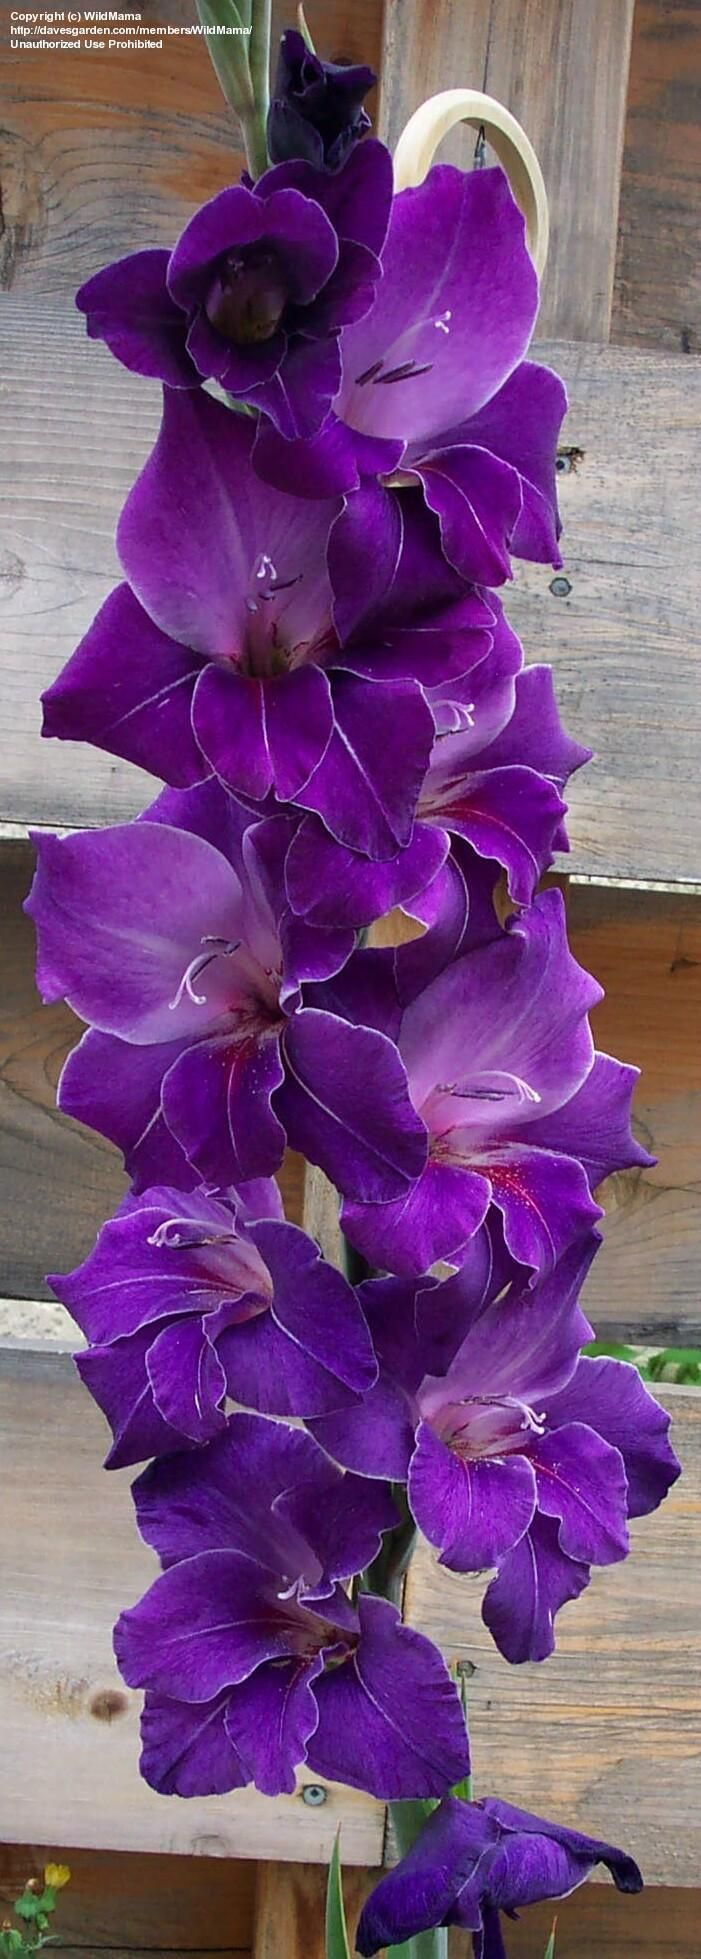 Gladiolus 'Violetta' (Gladiolus x hortulanus) the bloom gets about 3' tall-they are a perennial and only bloom about 3 weeks